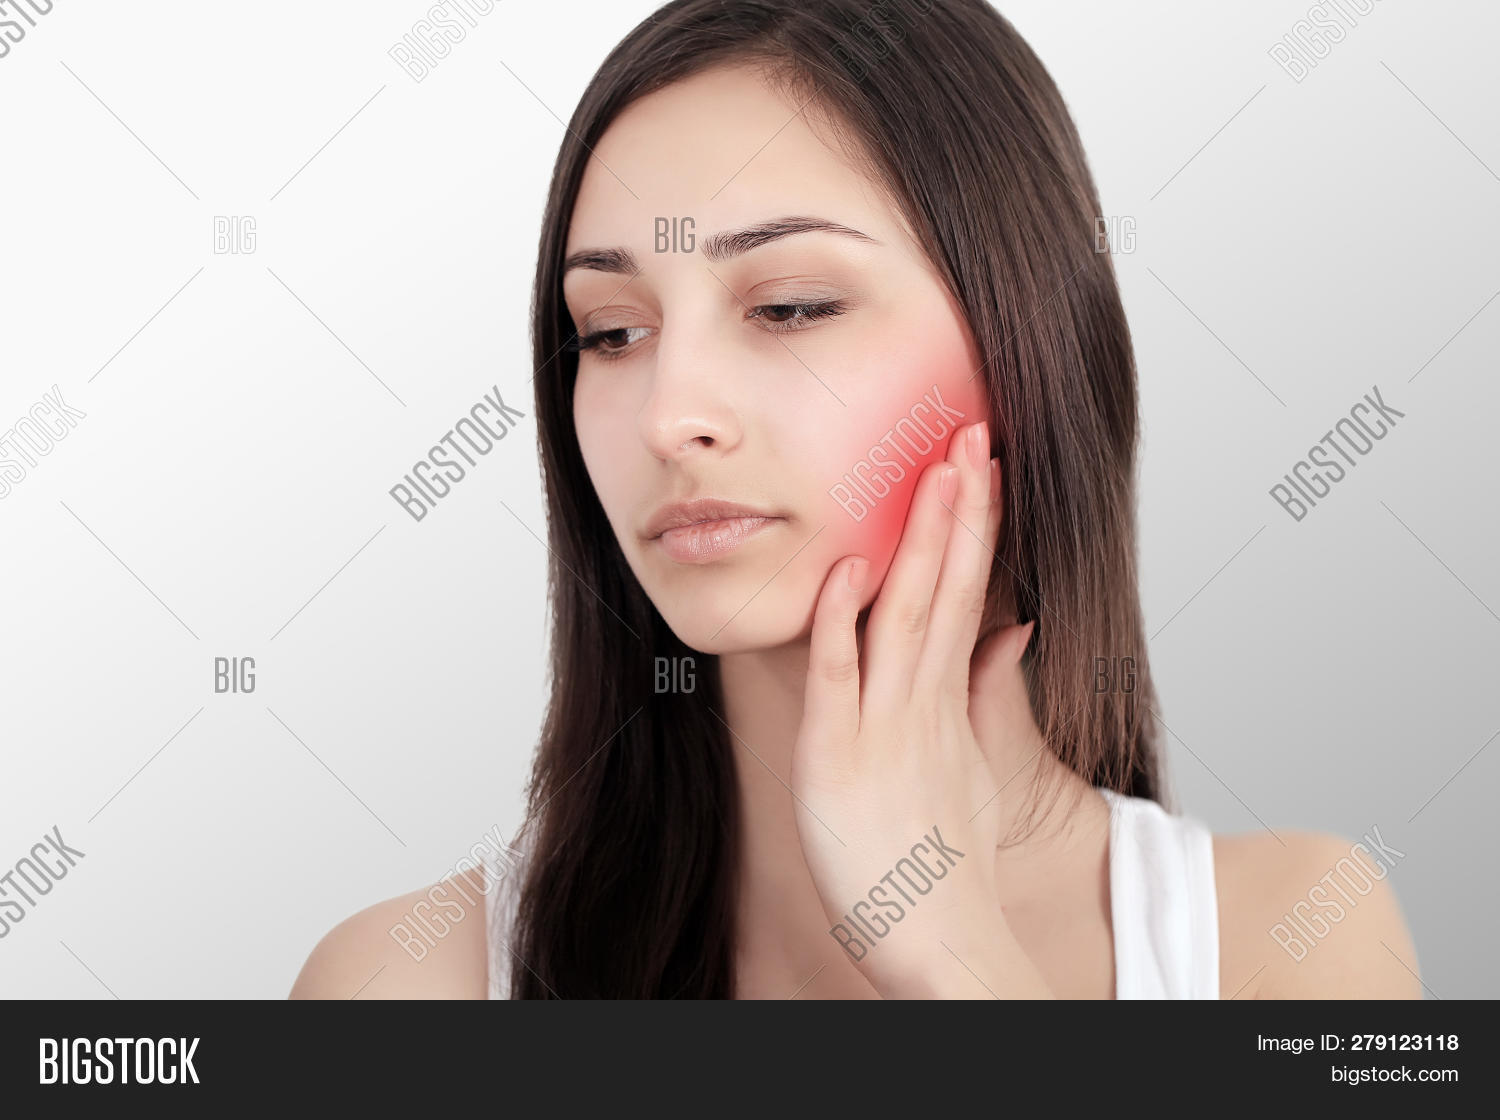 ache,attractive,background,beautiful,beauty,bleeding,brunette,care,caucasian,cheek,cry,dental,eat,eating,face,female,frown,fruit,gingivitis,girl,gum,hand,health,healthcare,healthy,hurt,isolated,jaw,looking,pain,painful,part,portrait,problem,red,sensitive,sensitivity,suffer,tears,teeth,tooth,toothache,touch,white,woman,young